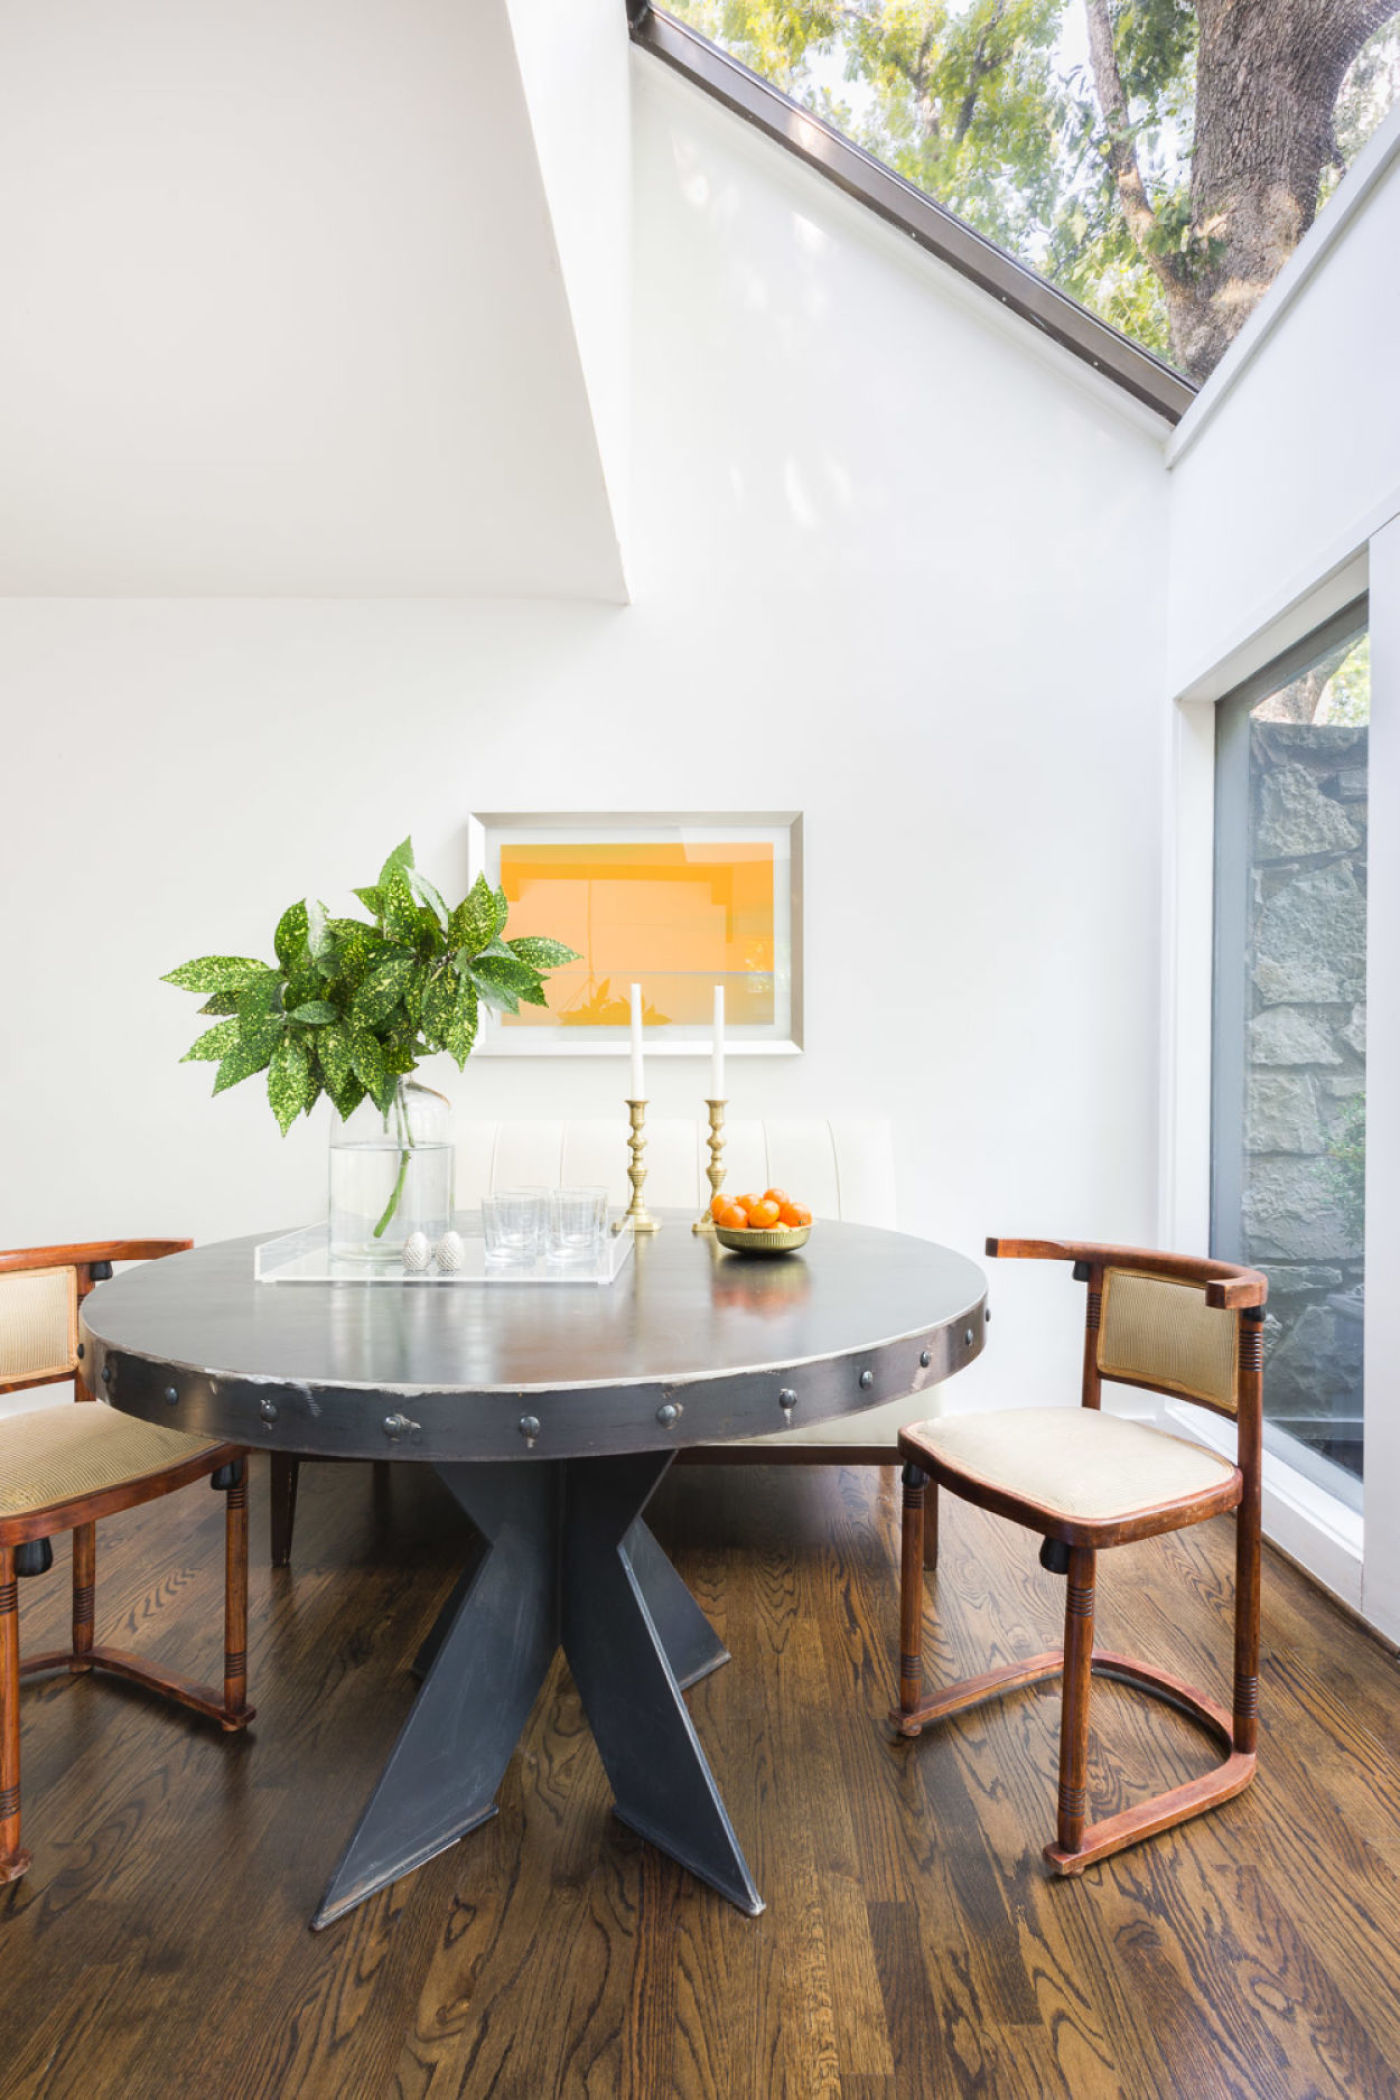 Architectural home breakfast room by Jason Arnold Interiors